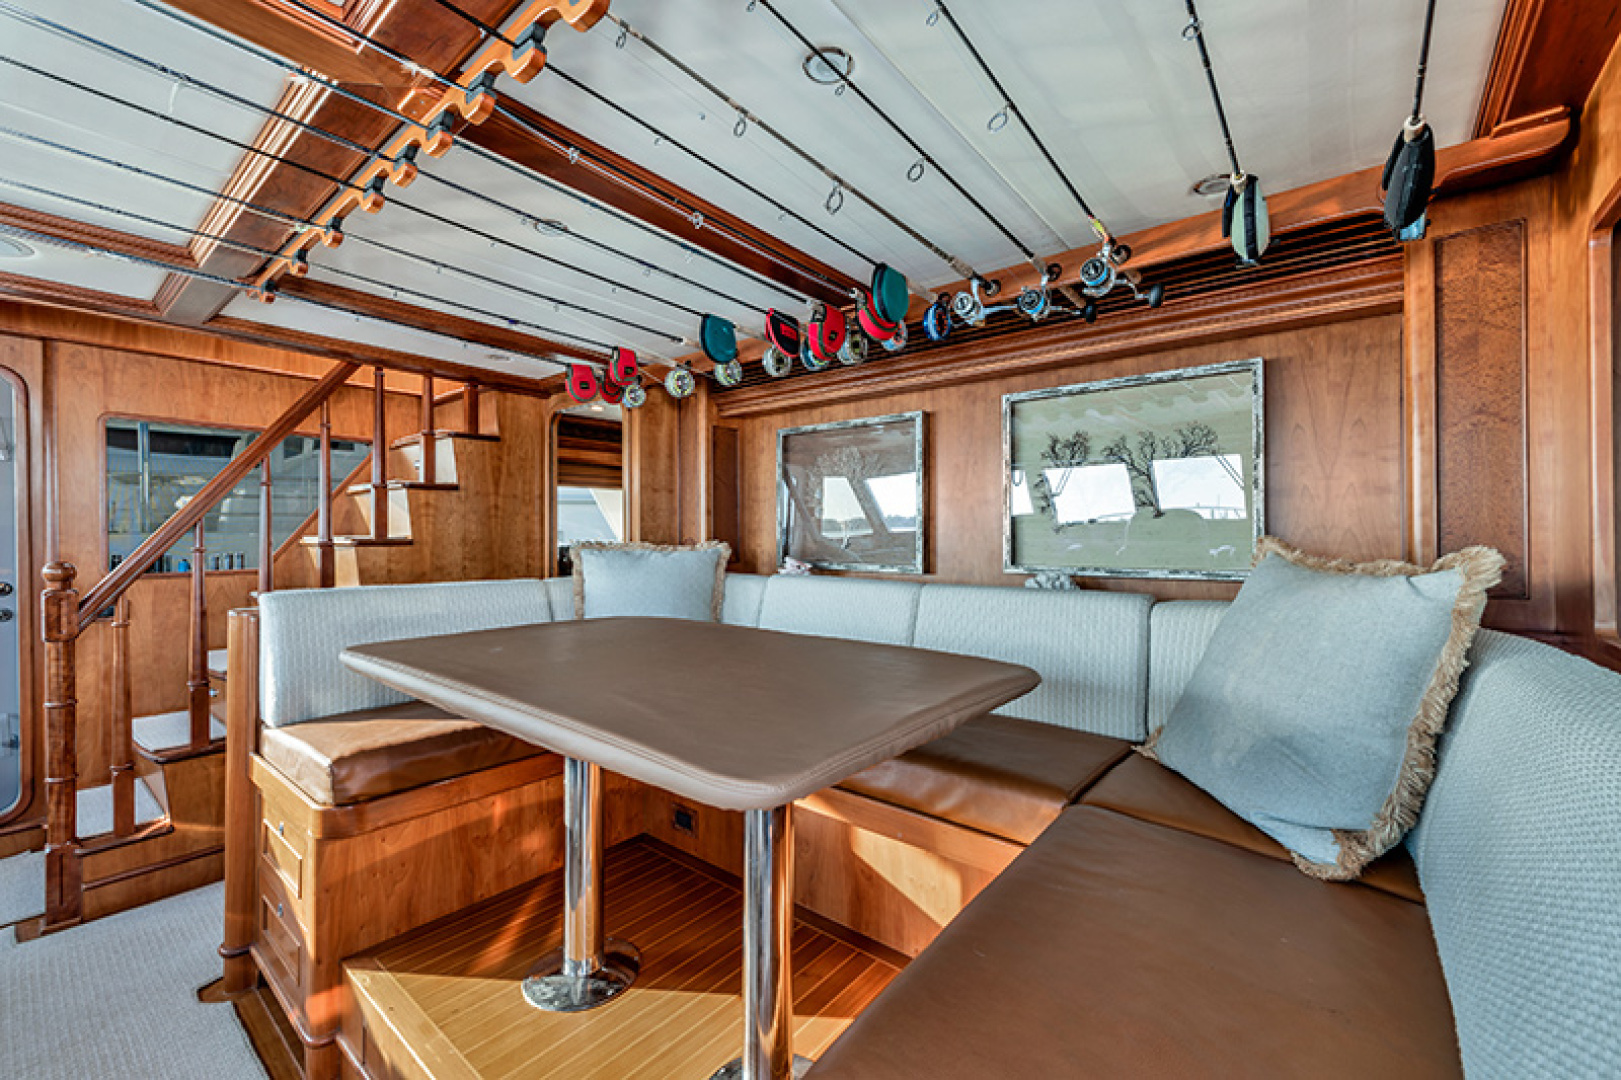 Outer Reef Yachts-Raised Pilothouse 2007-MS. MONICA Palm Beach Gardens-Florida-United States-Pilothouse-1119566   Thumbnail